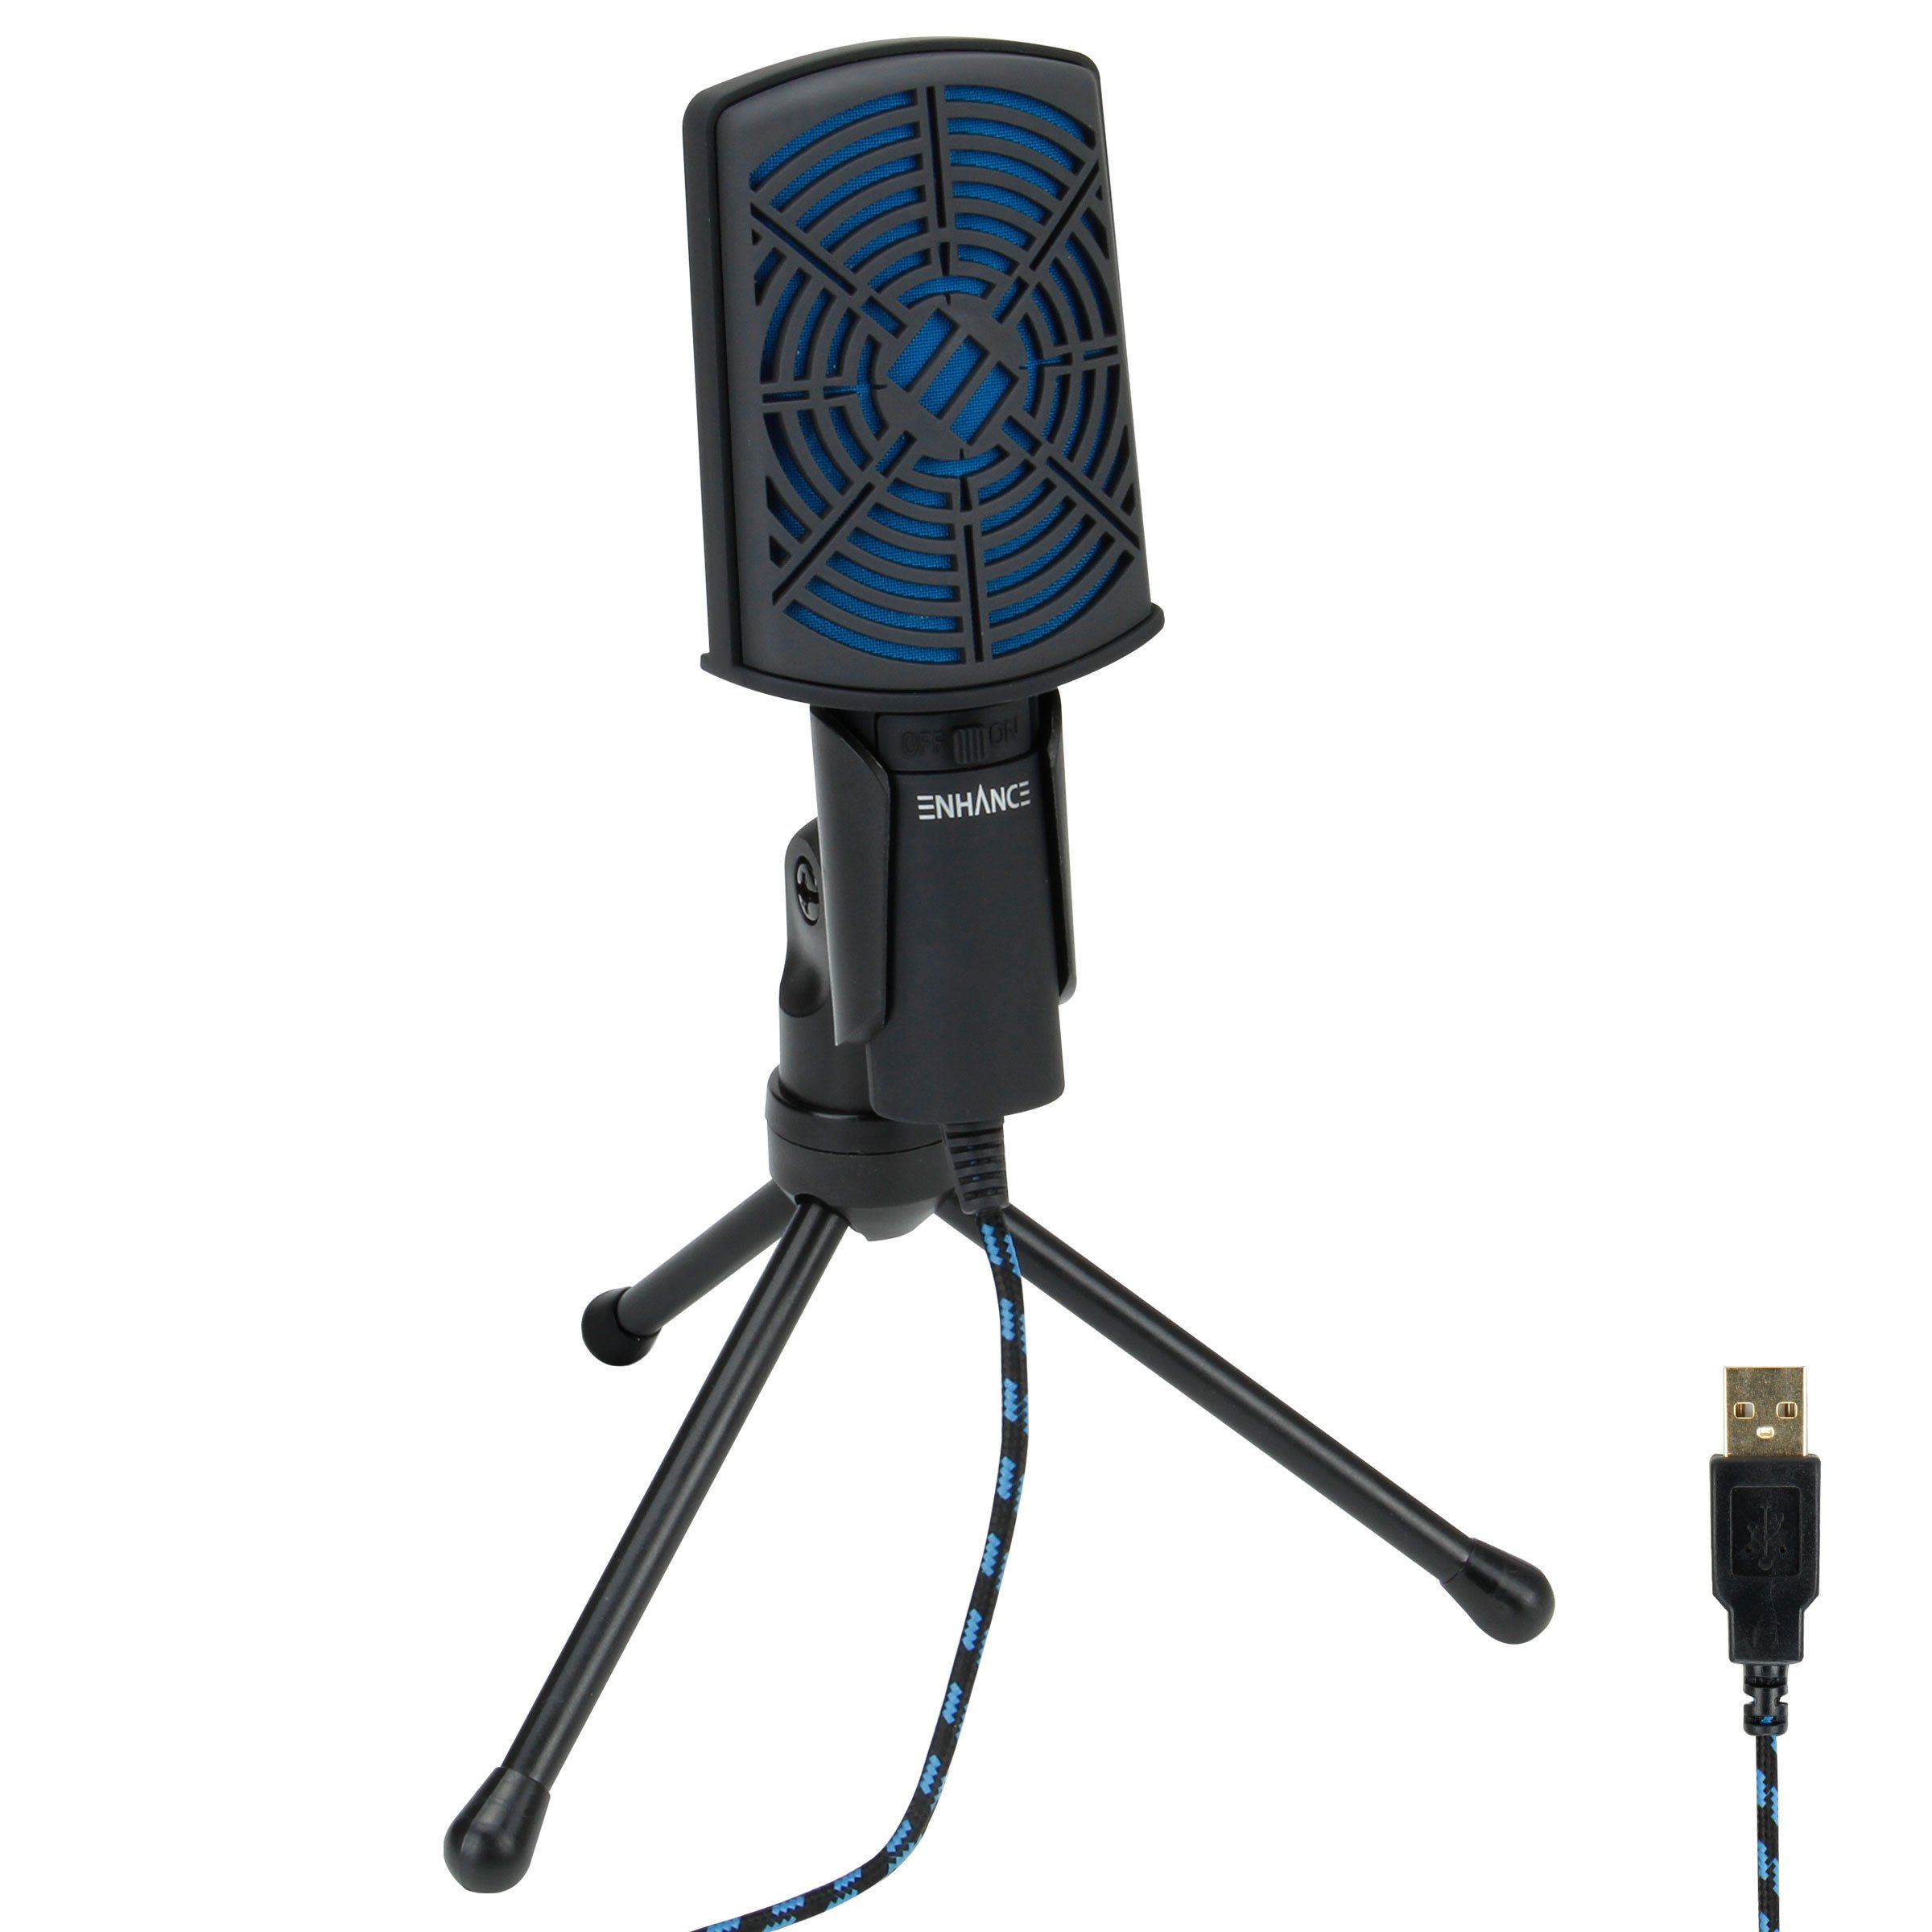 ENHANCE USB Condenser Gaming Microphone - Computer Desktop Mic for Streaming & Recording with Adjustable Stand Design and Mute Switch - For Skype, Conference Calls, Twitch, Youtube, and Discord - Blue by ENHANCE